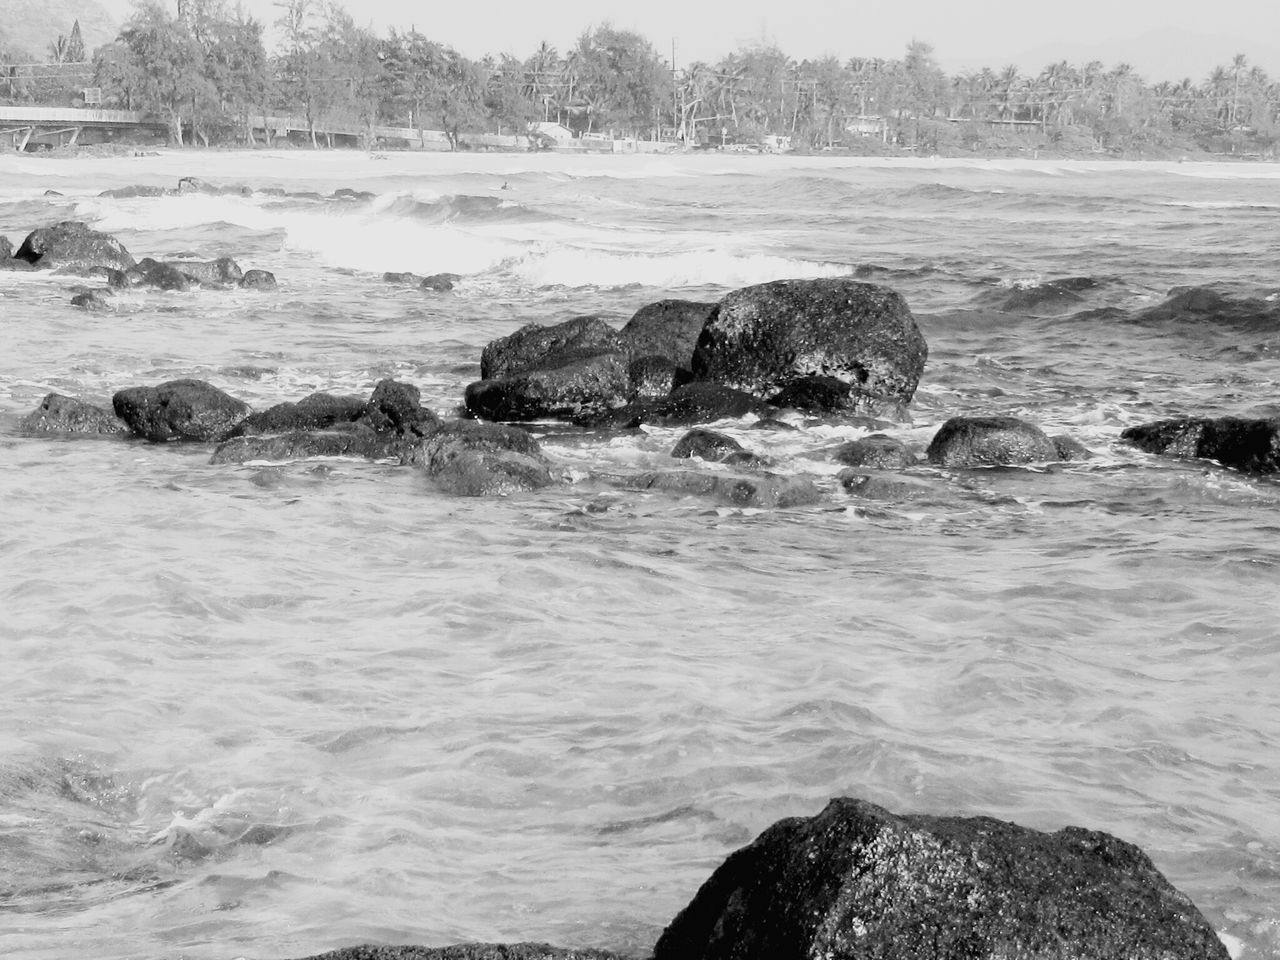 Sea Nature Outdoors Motion Beauty In Nature Water No People Tide Travel Destinations Tranquil Scene Rocks And Water Kauai Hawaii Blackandwhite Photography